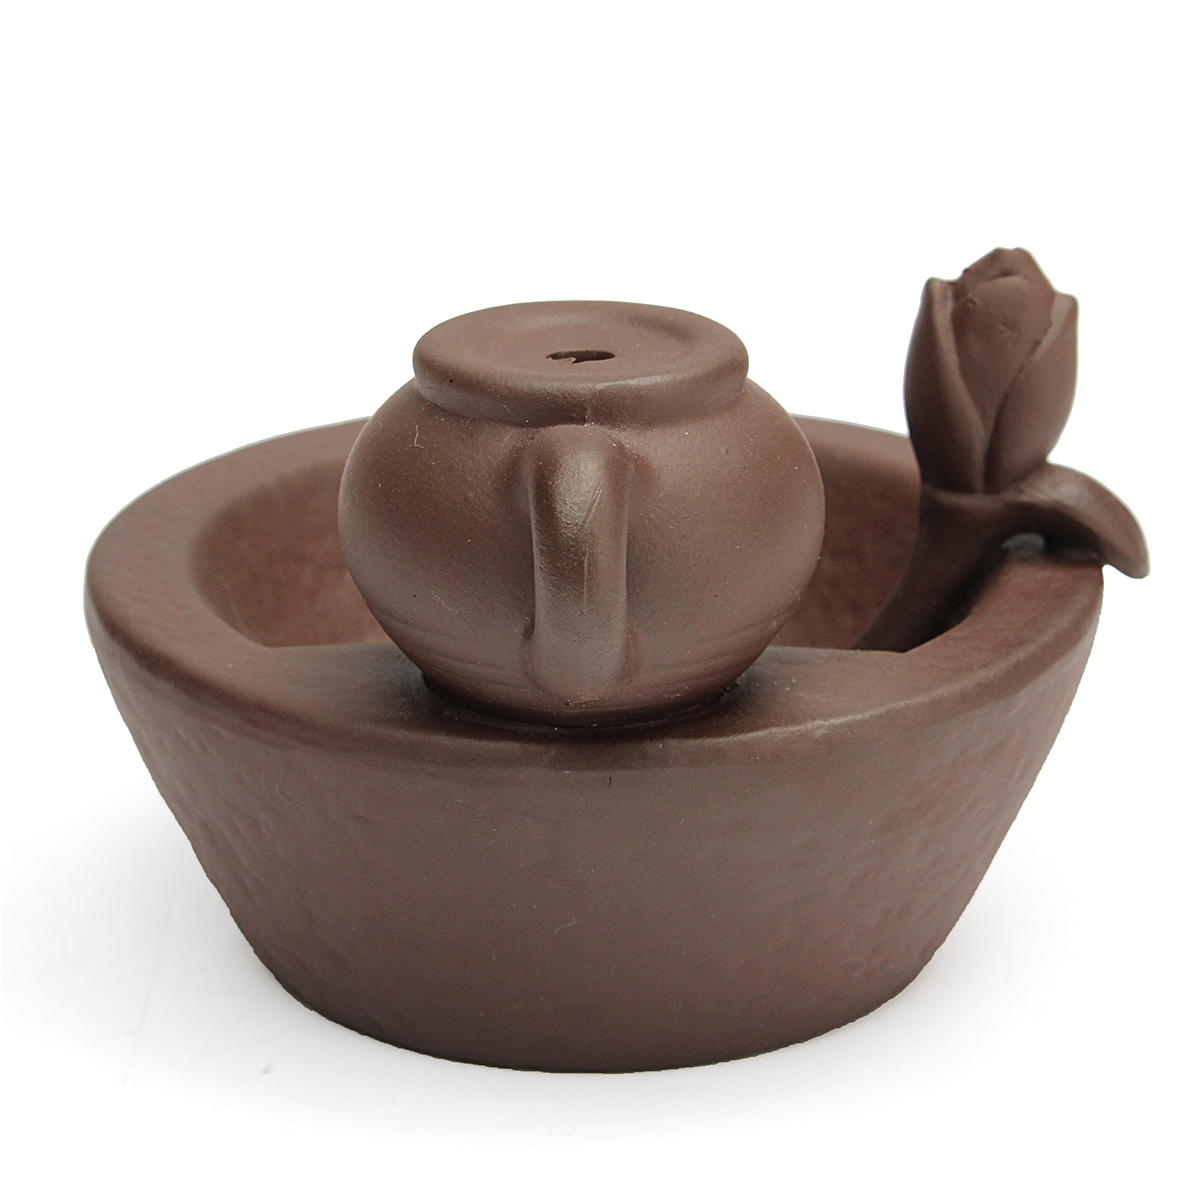 Chinese Style Backflow Incense Cone Burner Teapot Home Fragrant Stick Holder Ceremony Feng Shui